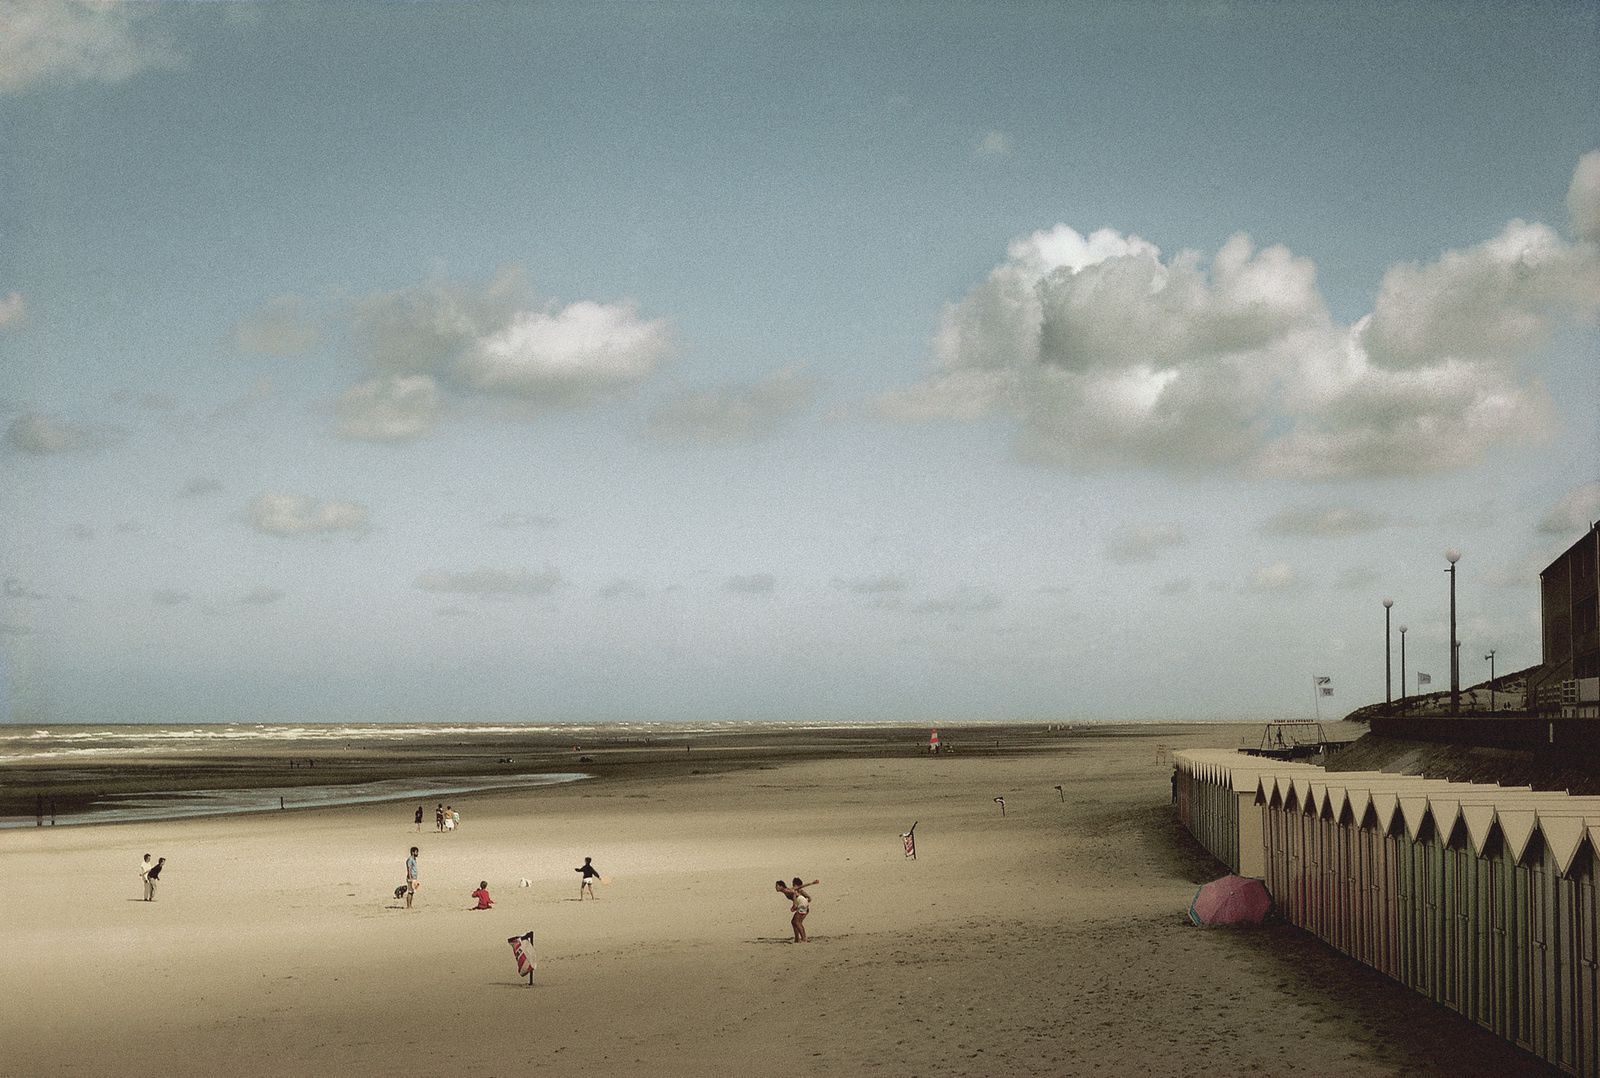 """France, Fort Mahon"", 1991 de Harry Guyaert"